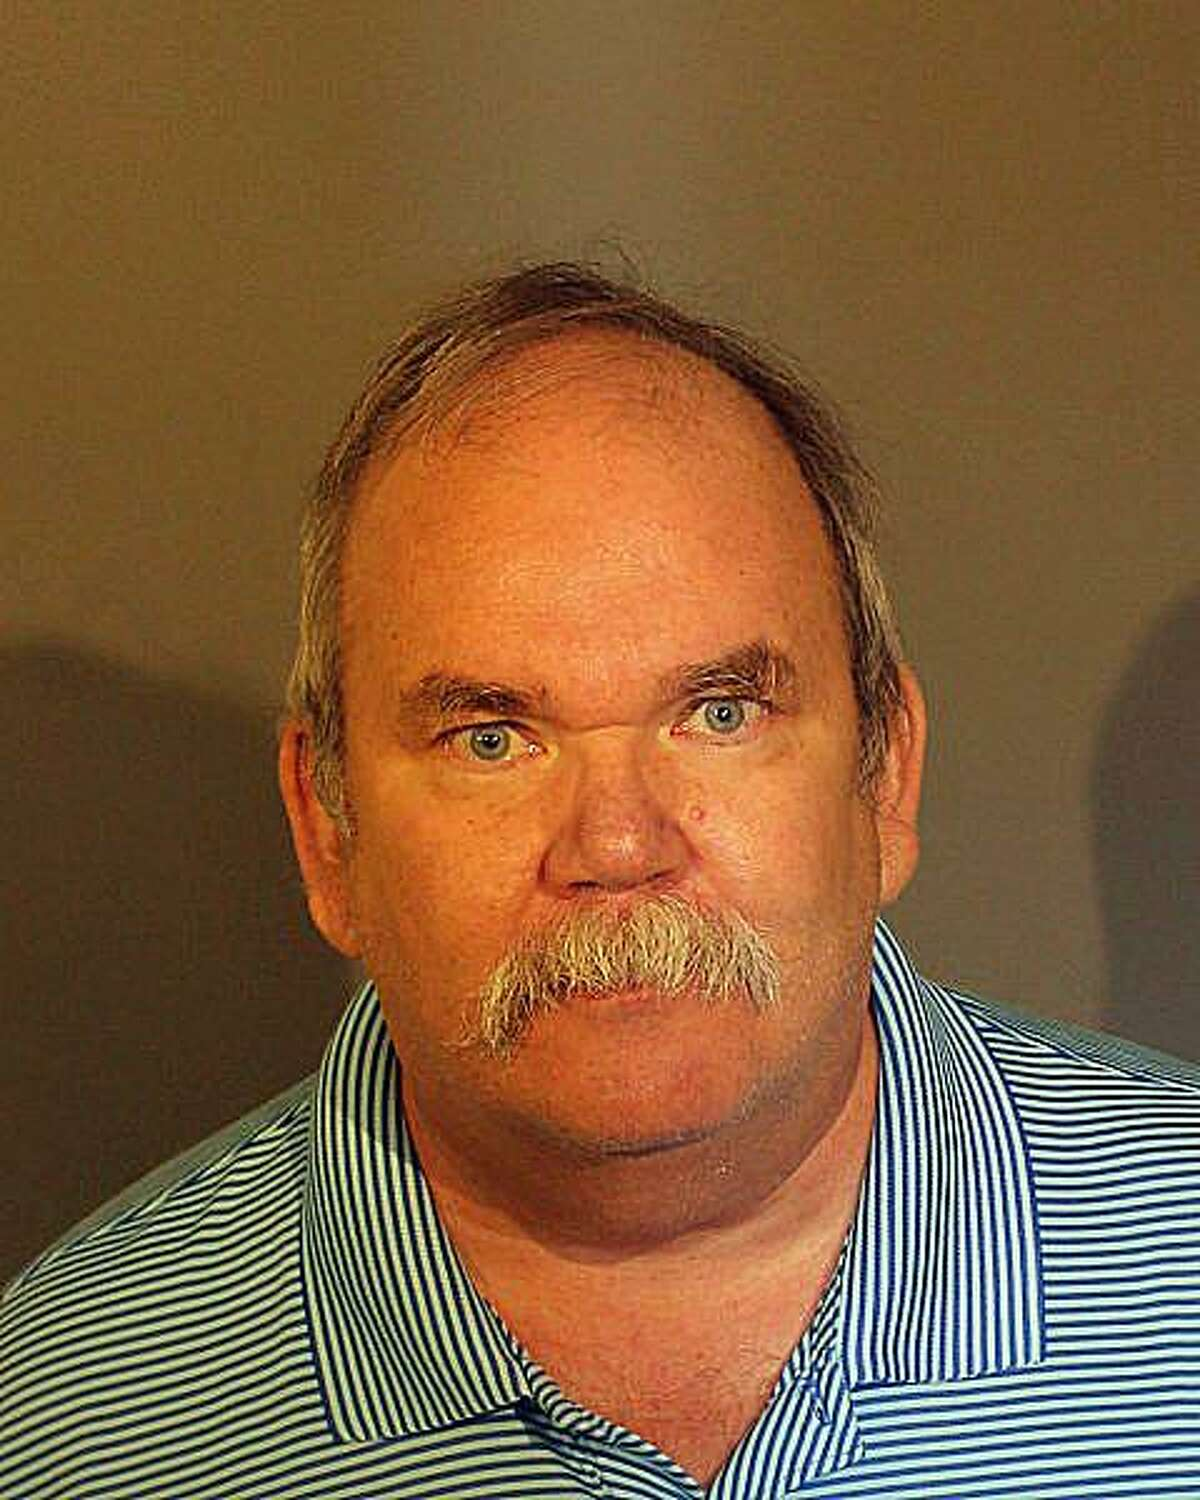 Kevin Hassan, 60, of Stamford, Conn., was charged with three counts of fourth-degree sexual assault, three counts of breach of peace and first-degree criminal trespass.